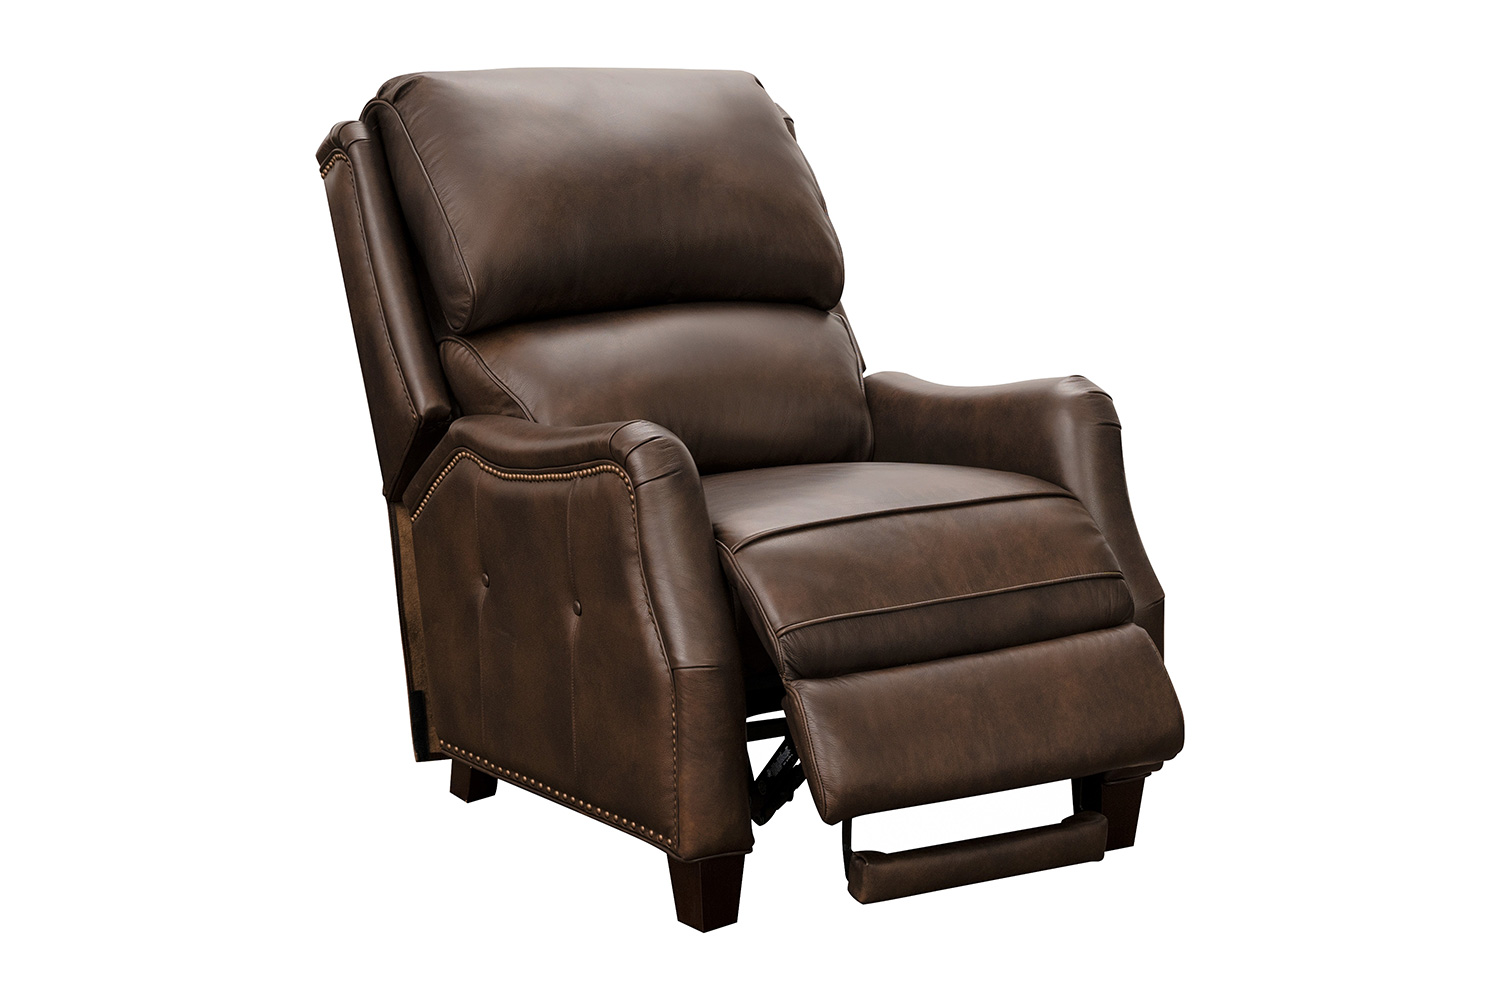 Barcalounger Morrison Big and Tall Recliner Chair - Ashford Walnut/All Leather